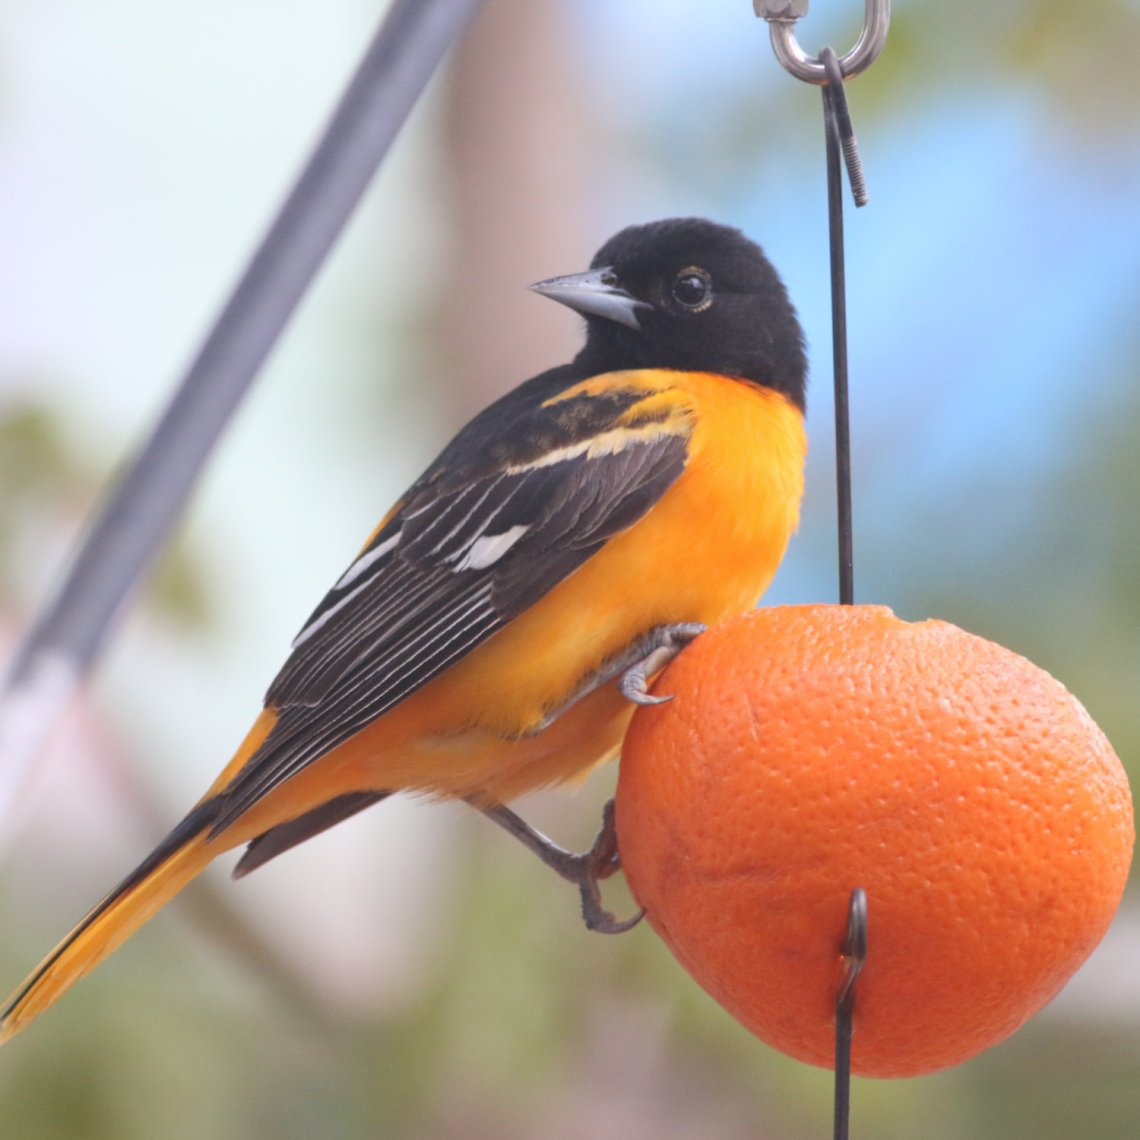 Male Baltimore Oriole perched on an orange slice.